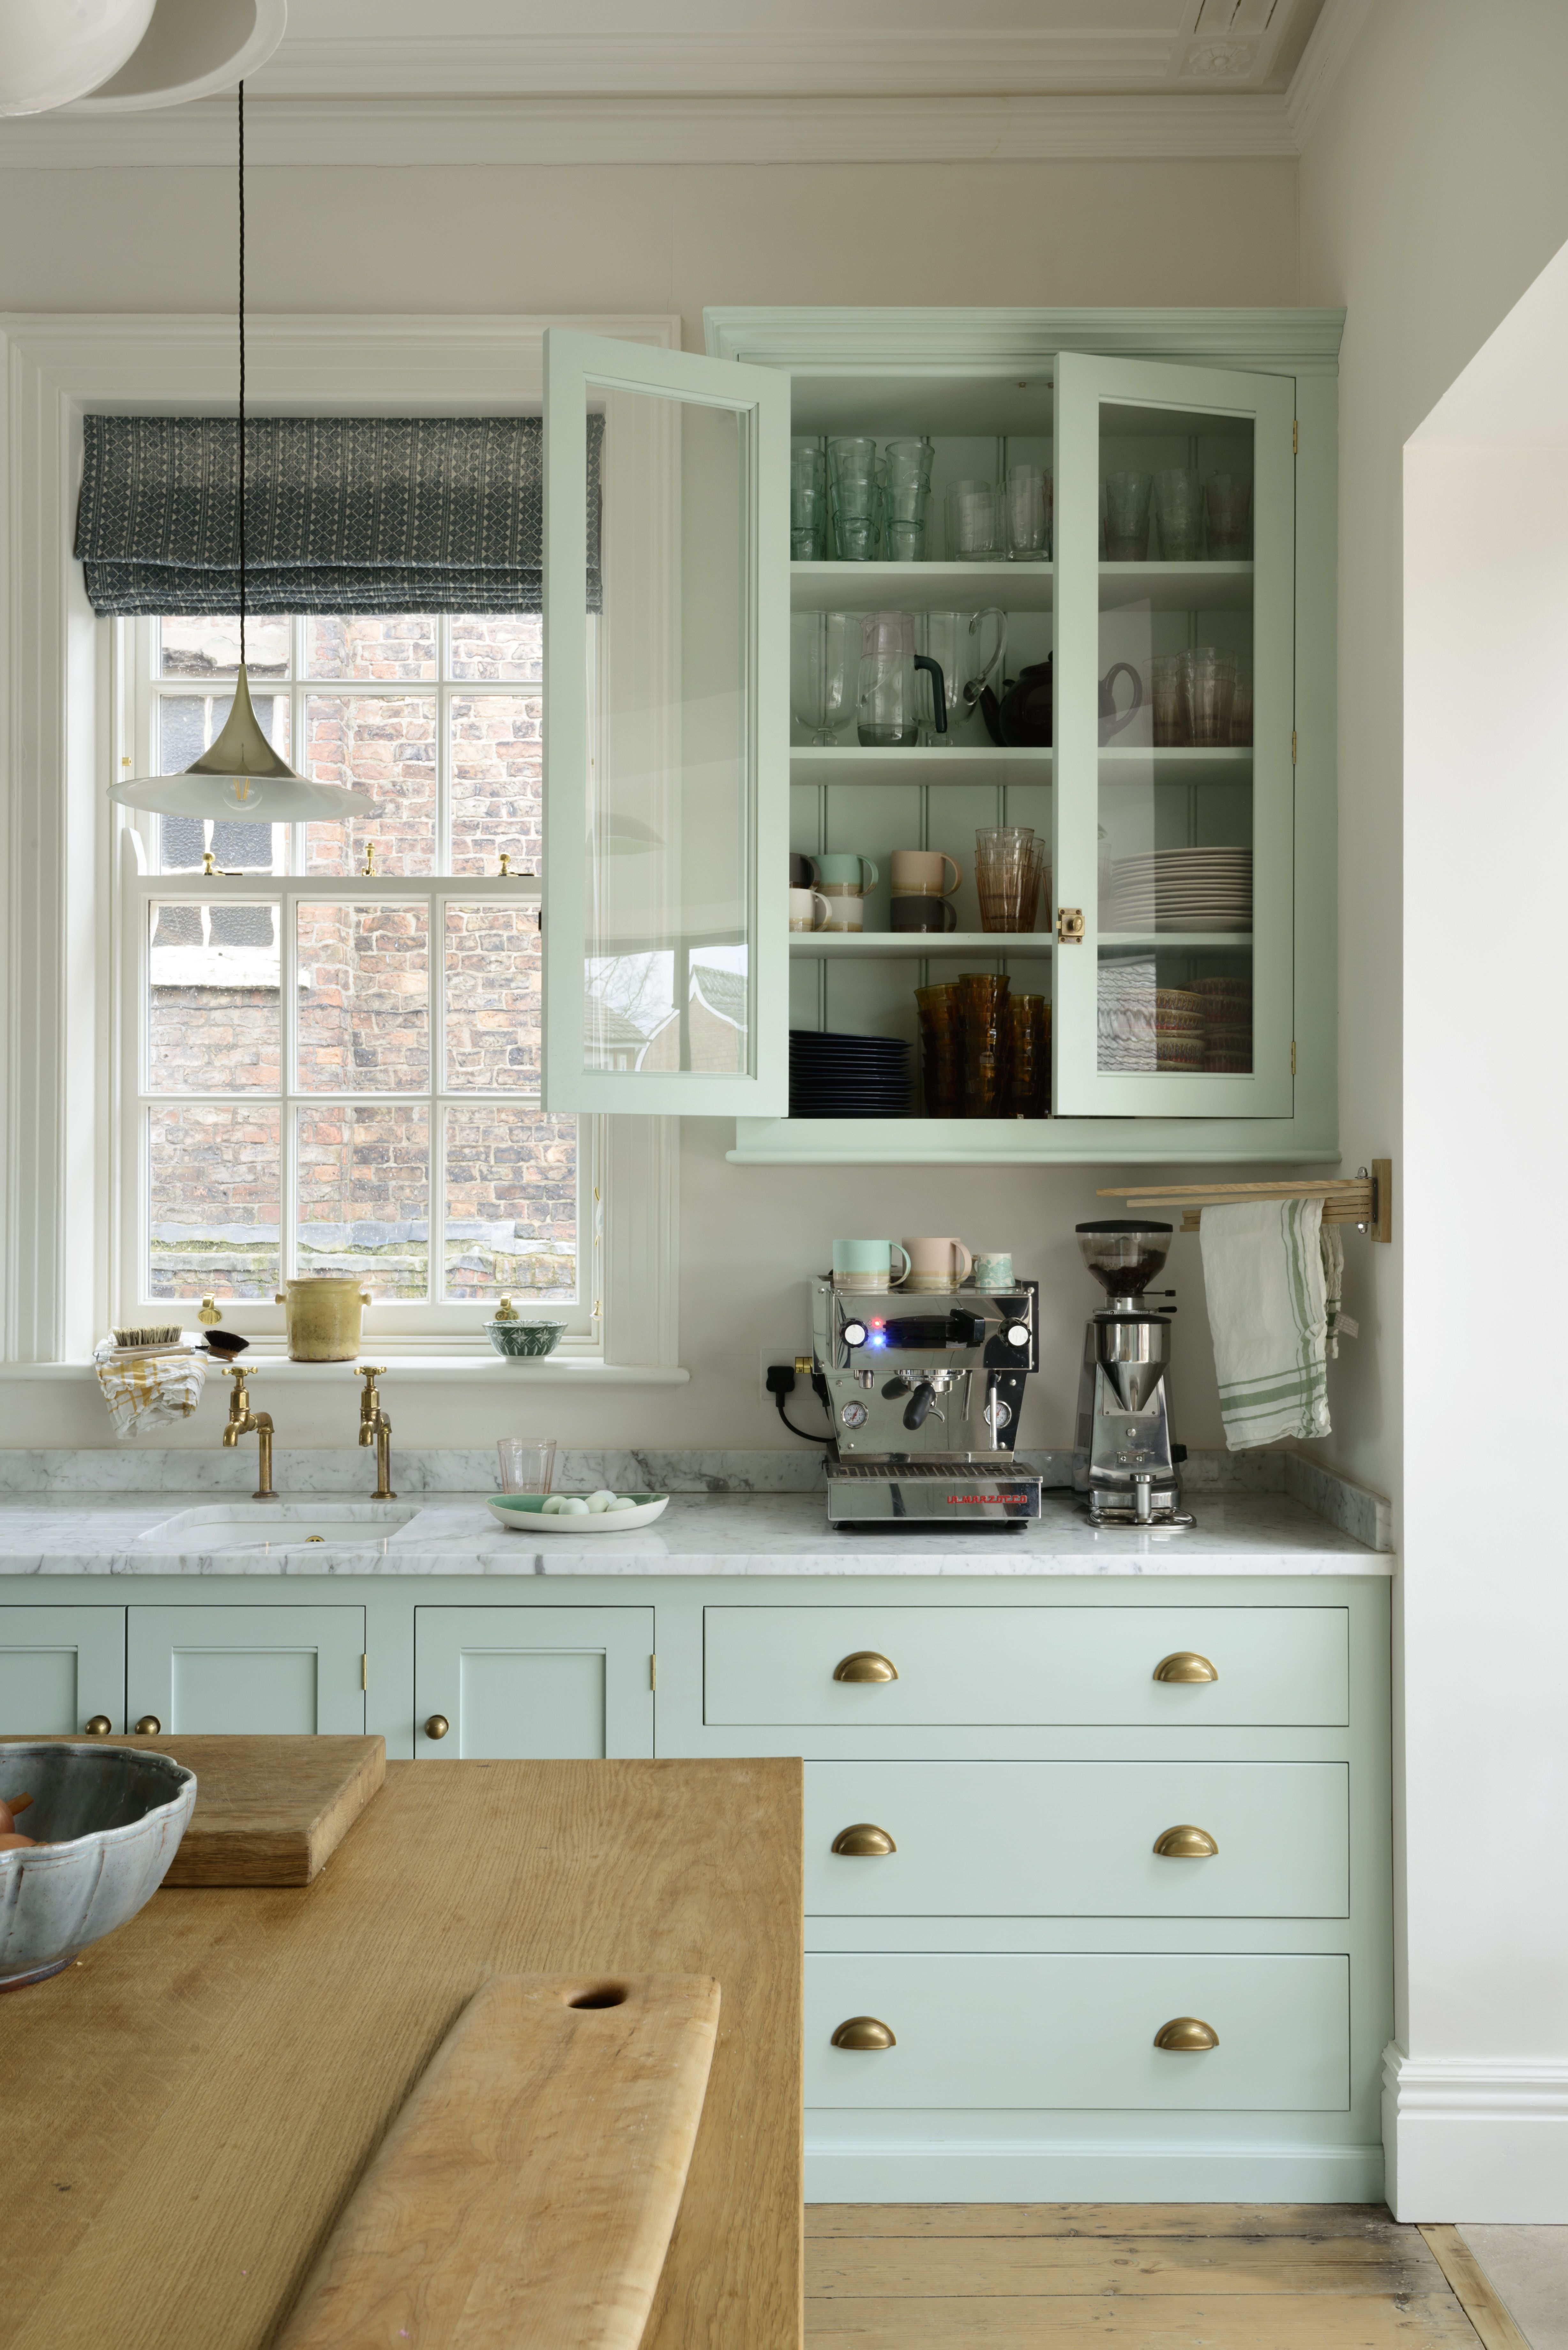 11 Stylish Shaker Kitchen Design Ideas Kitchen Devol Kitchens